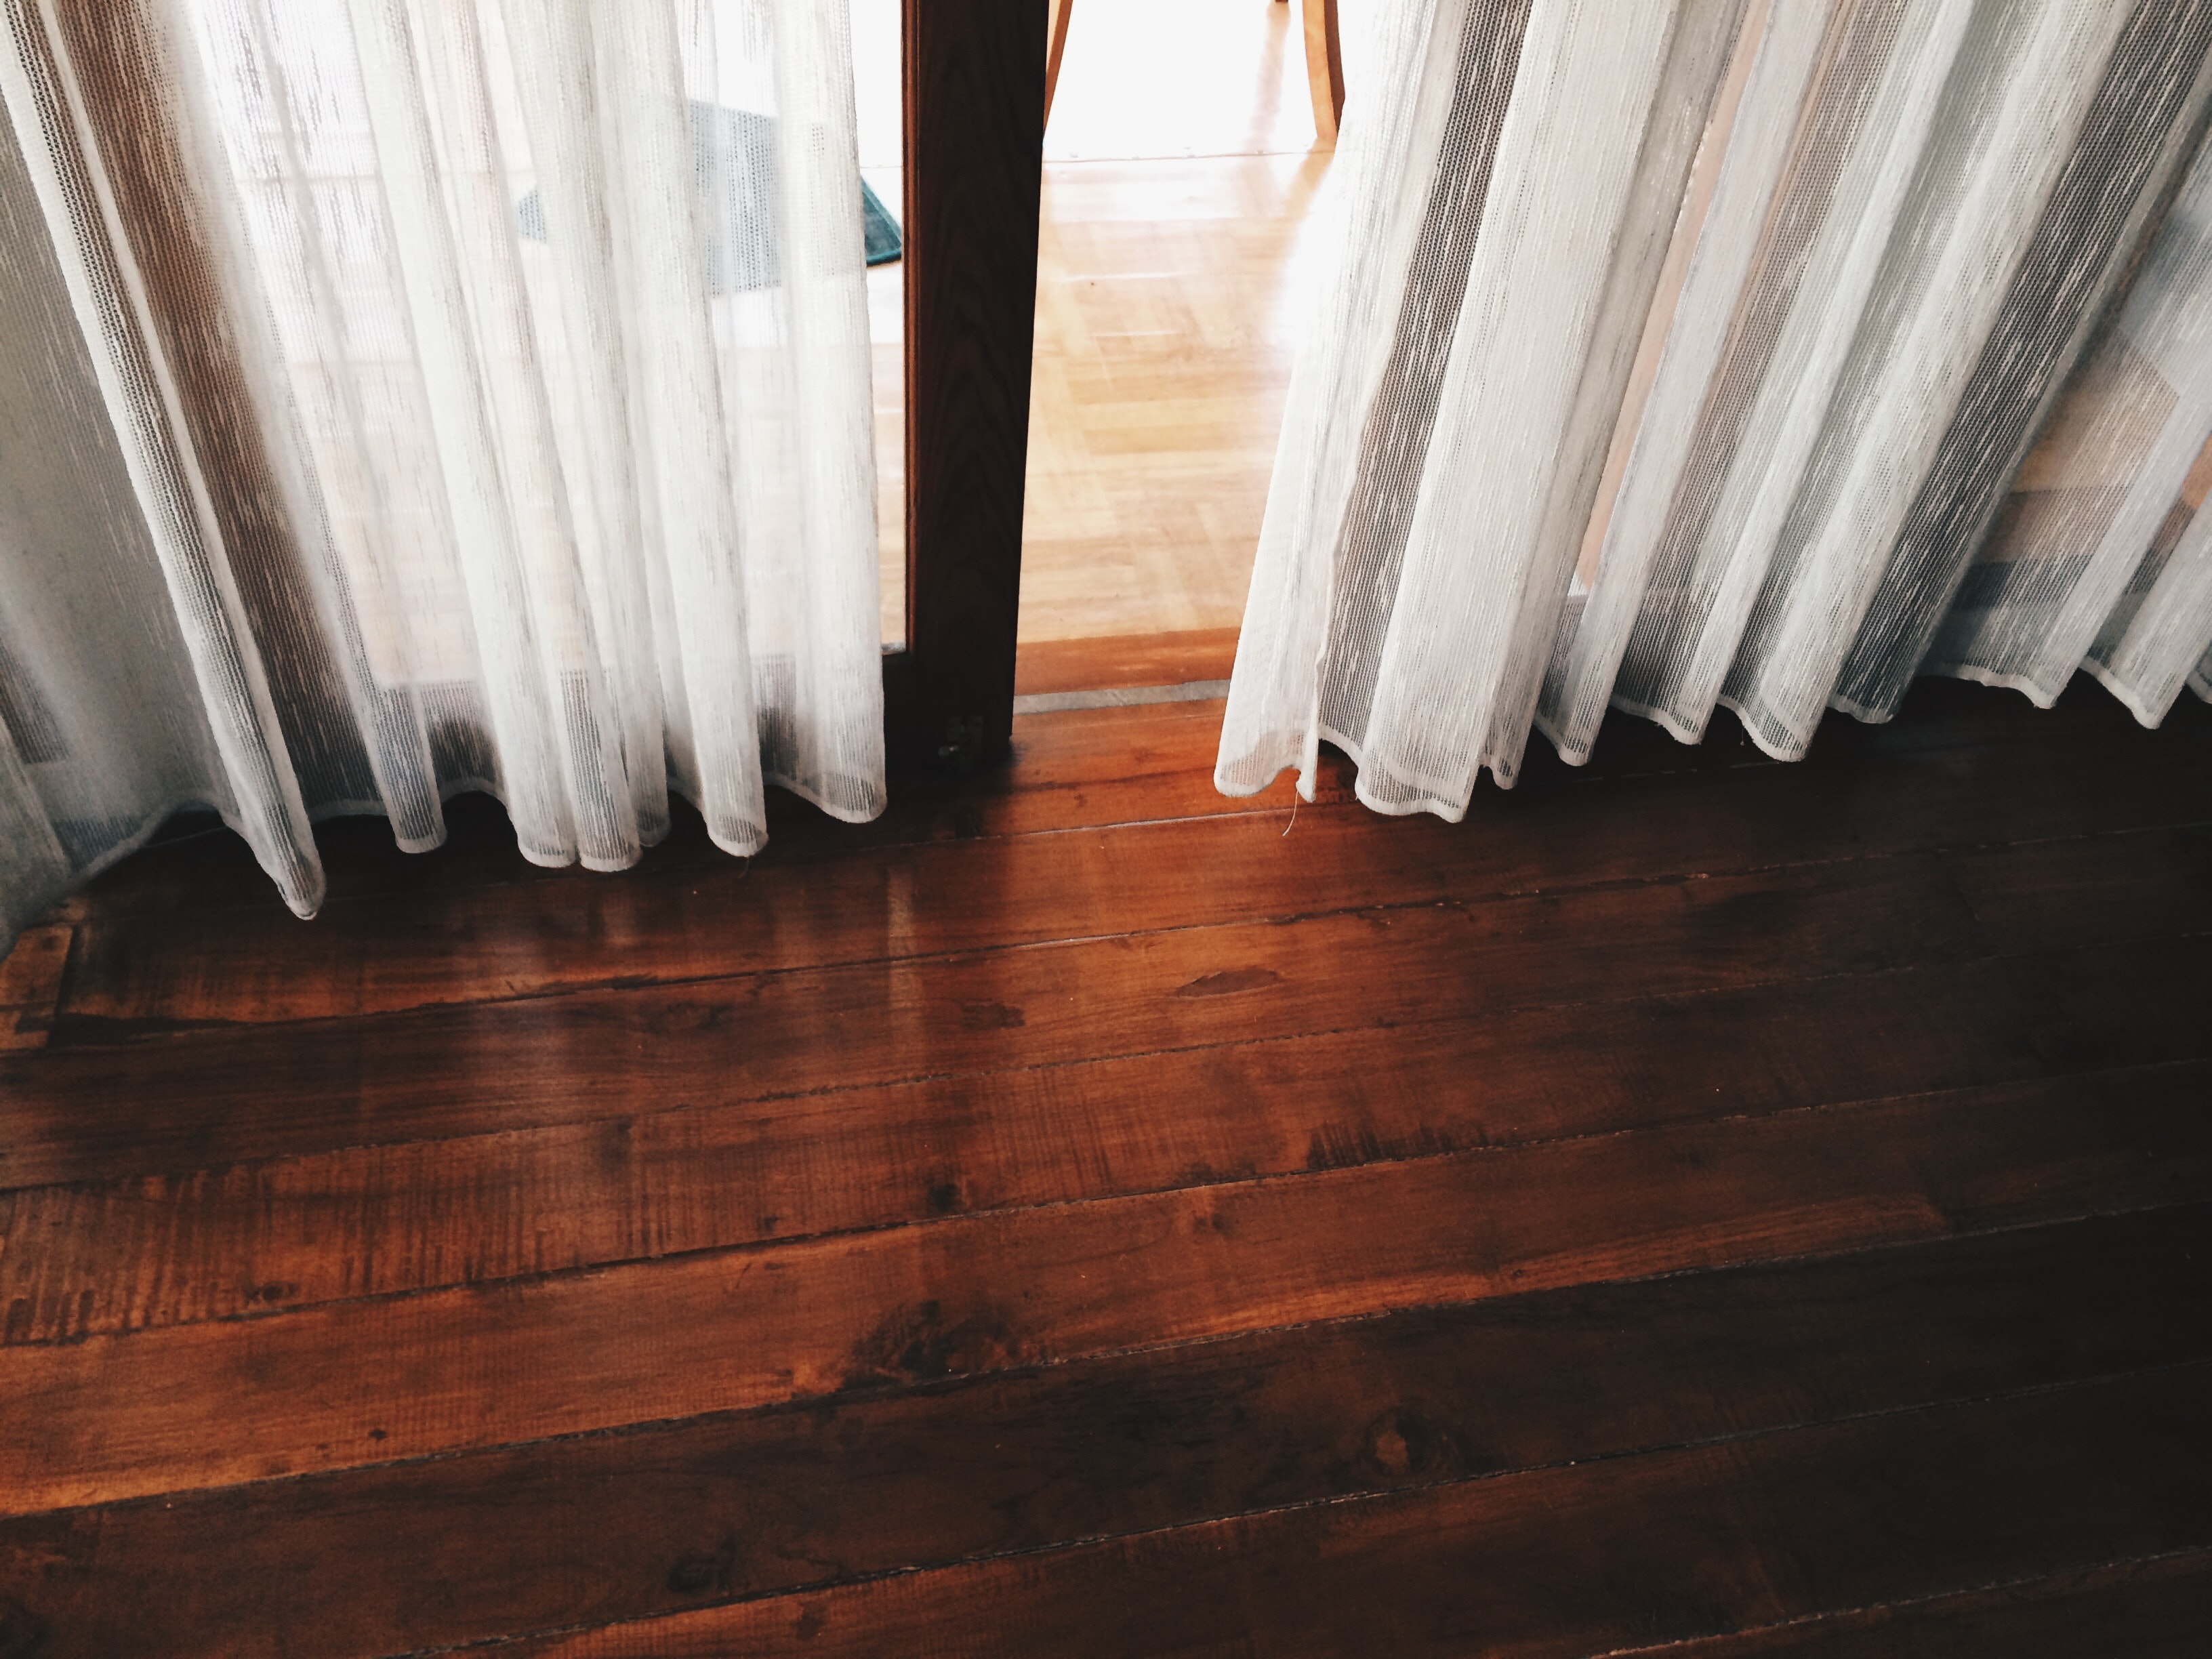 A hard wood floor in a house with the bottoms of sheer white curtains